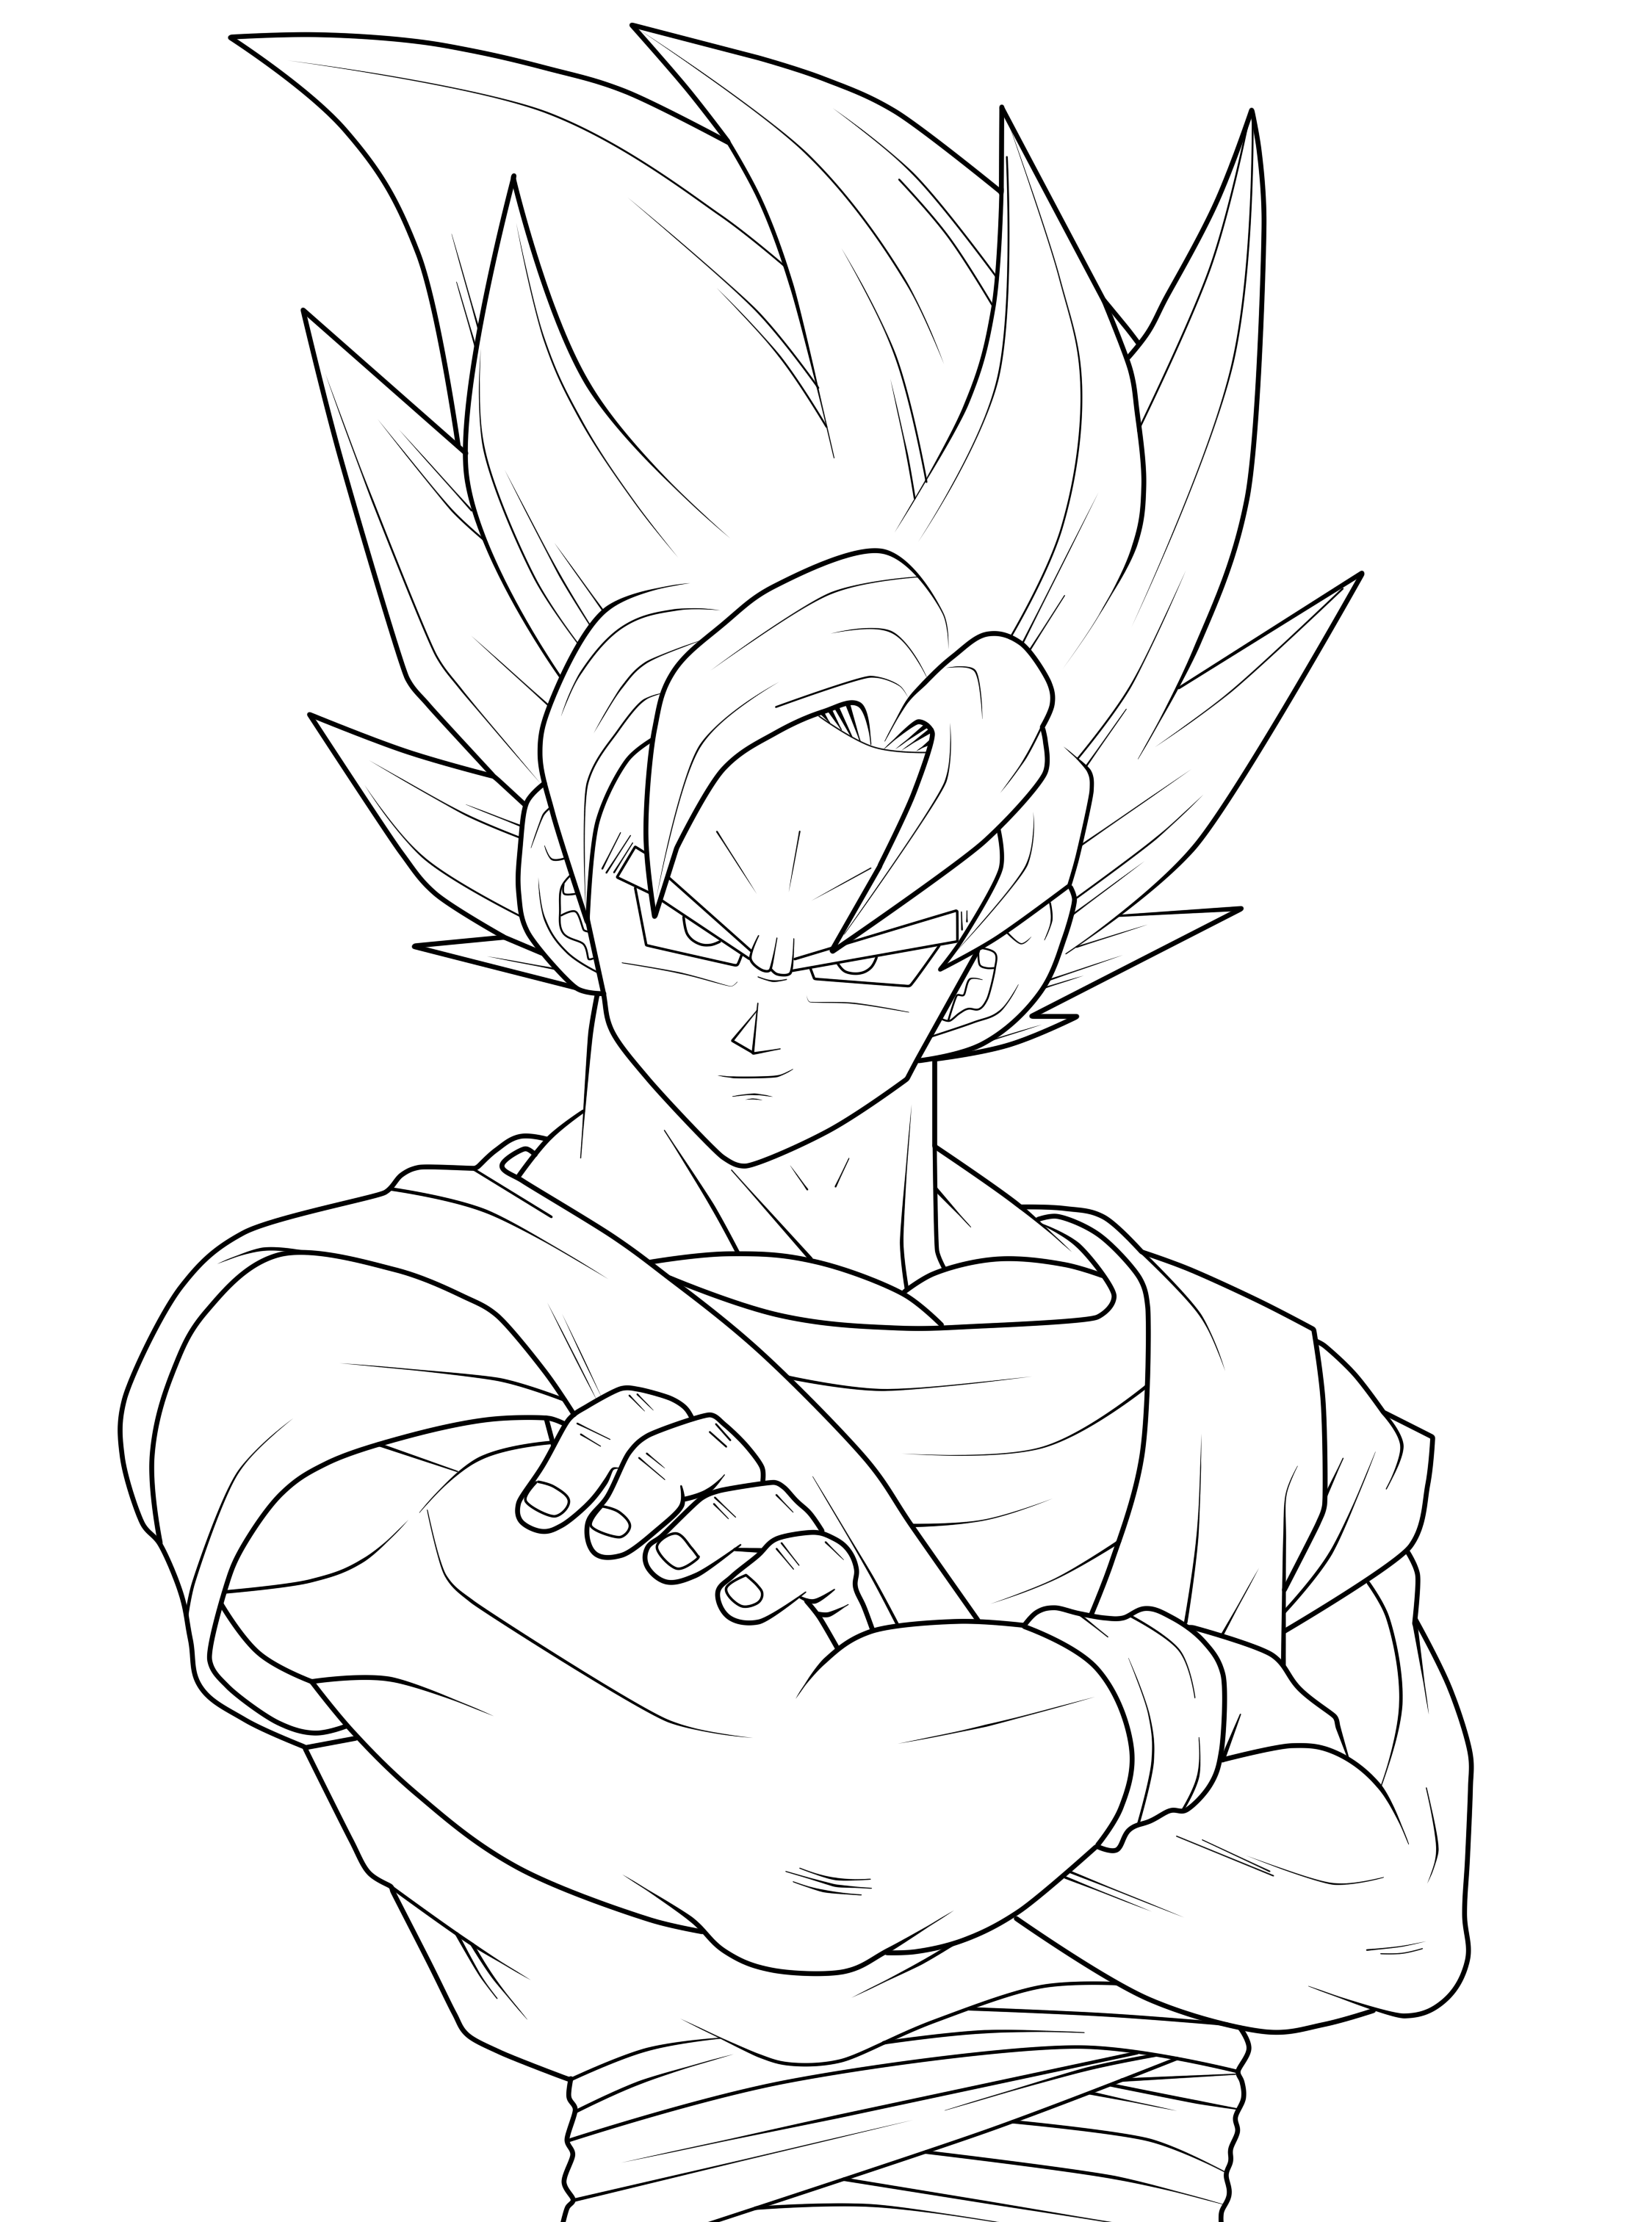 2249x3025 dragonball z coloring pages goku dragon ball kids within